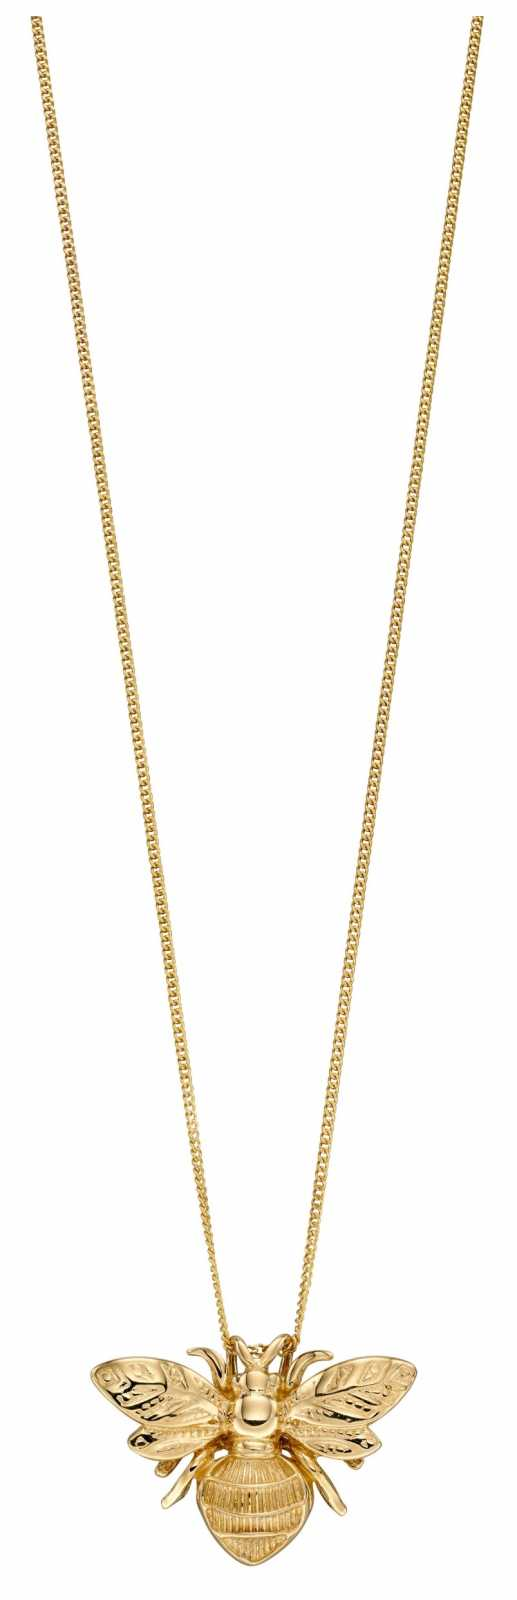 Elements Gold 9k Yellow Gold Bee Pendant ONLY GP2151